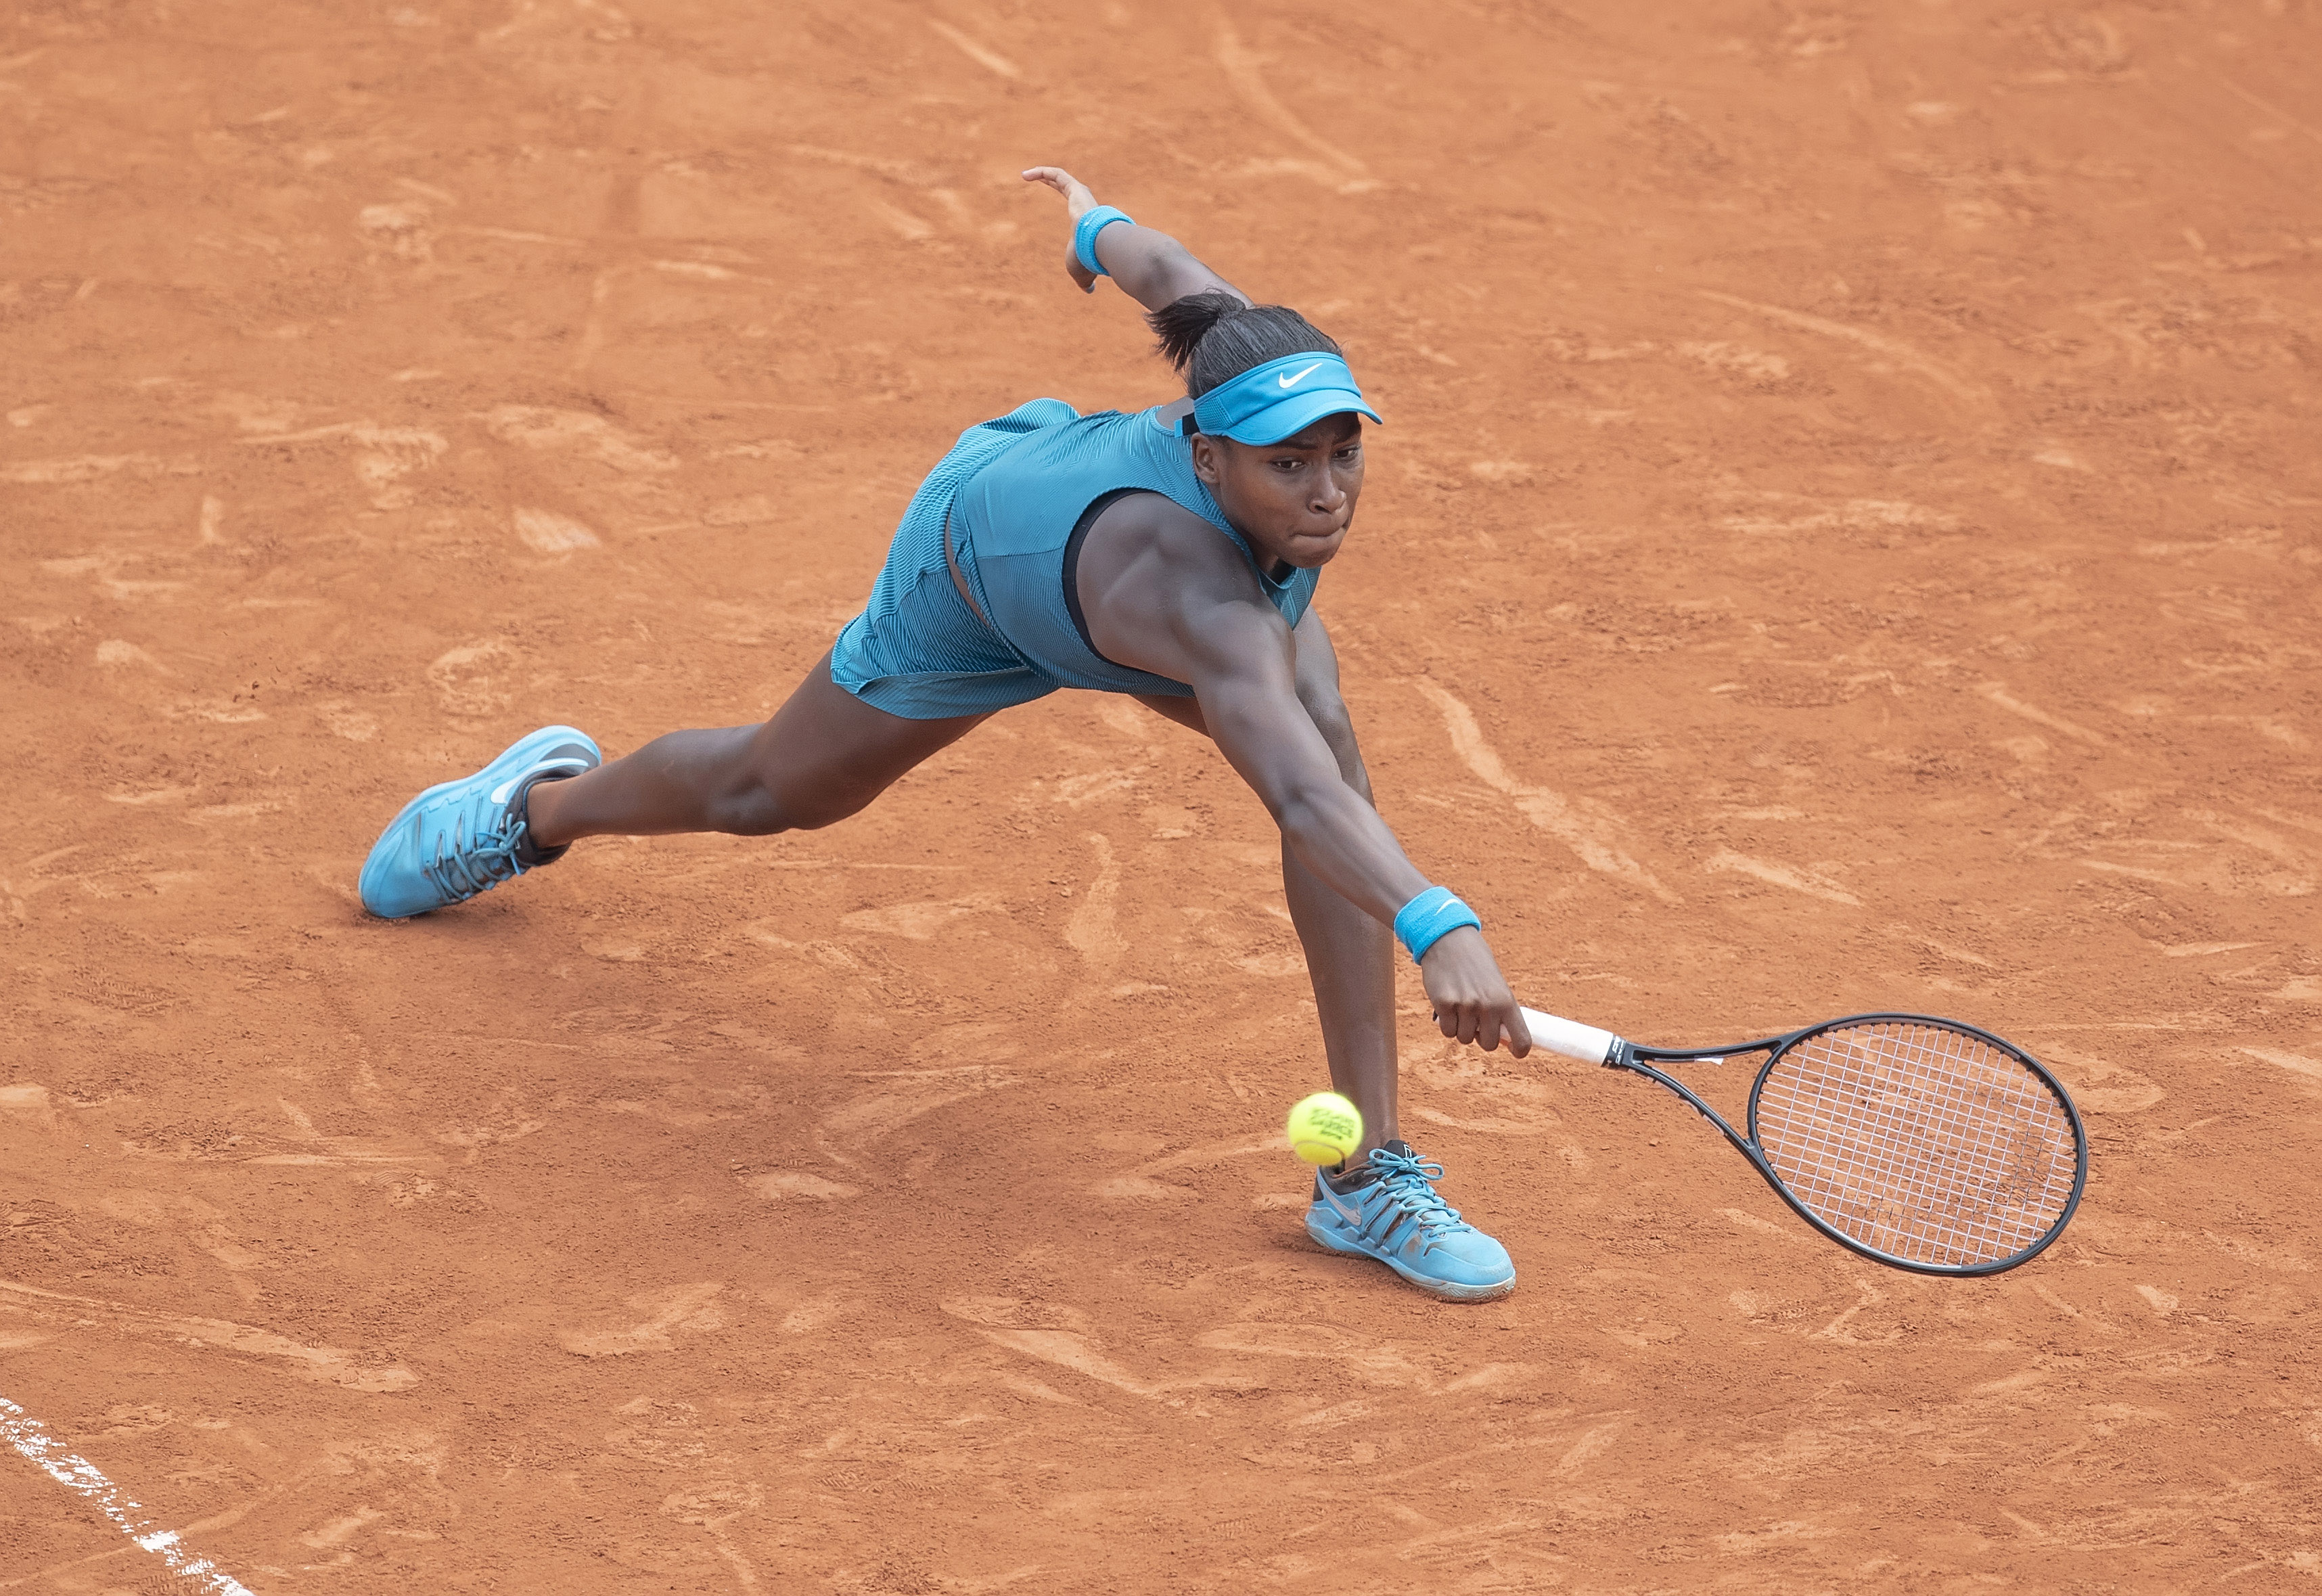 The French Open is where Coco Gauff has emerged into greatness